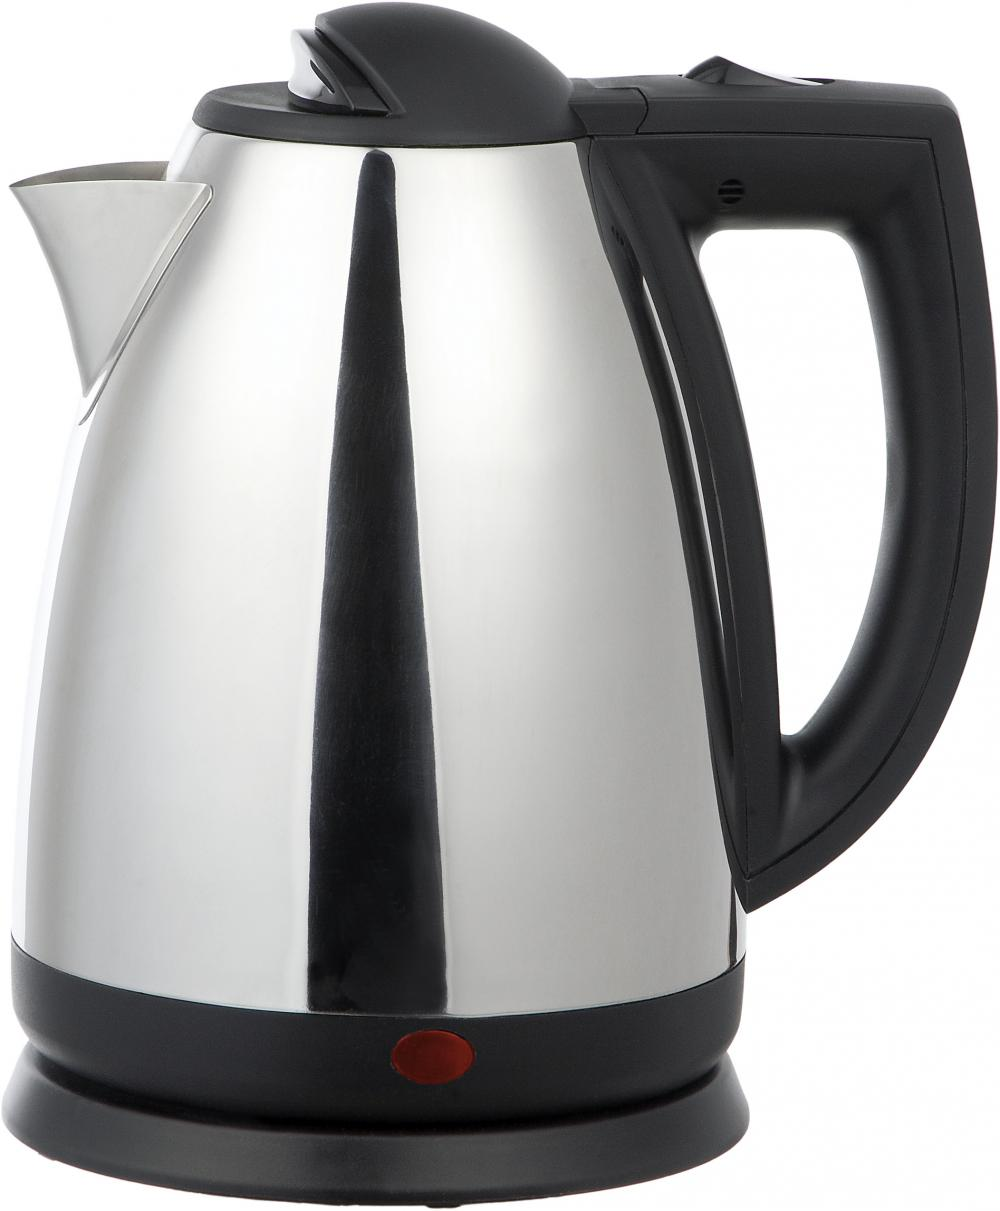 Brentwood KT-1800 2 Liter Stainless Steel Tea Kettle